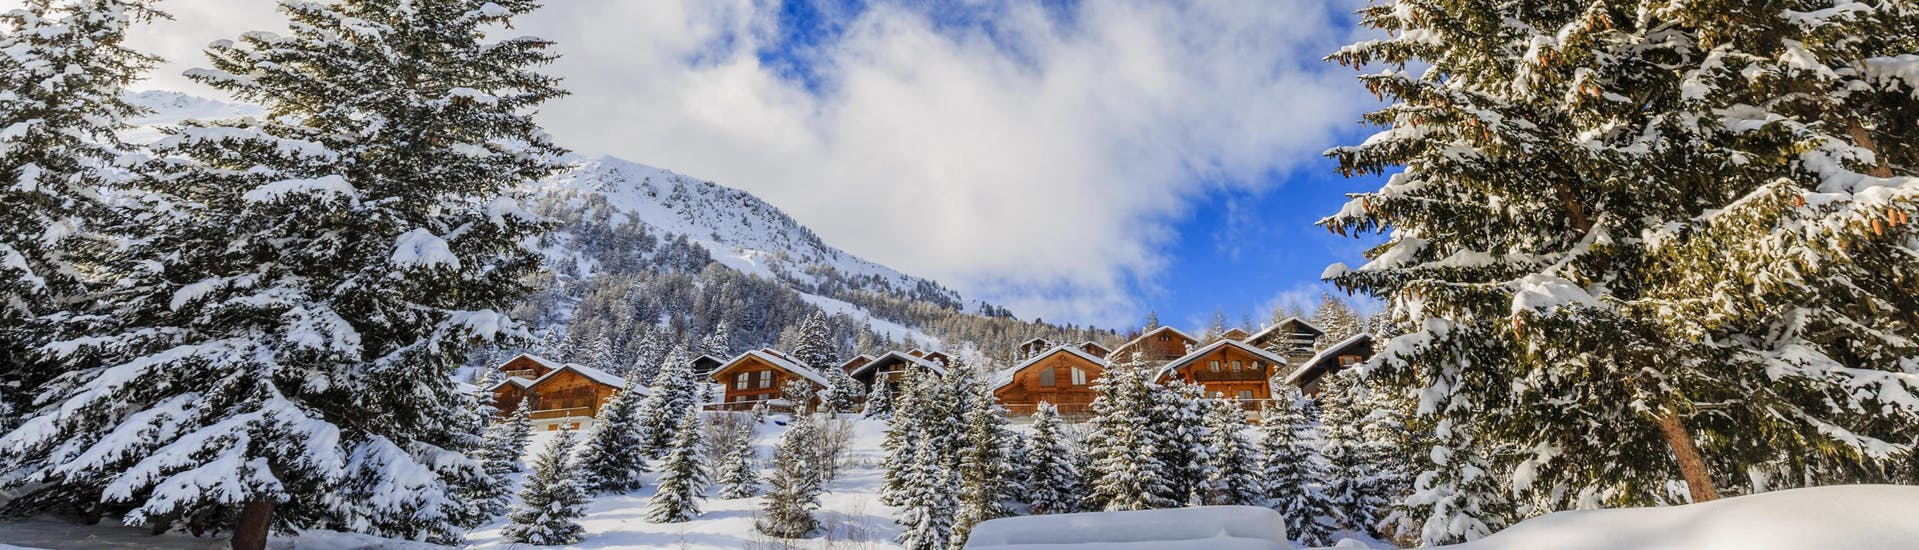 An image of the dreamy winter landscape in Thyon-Veysonnaz, a popular Swiss ski resort where visitors can book ski lessons with the local ski schools.